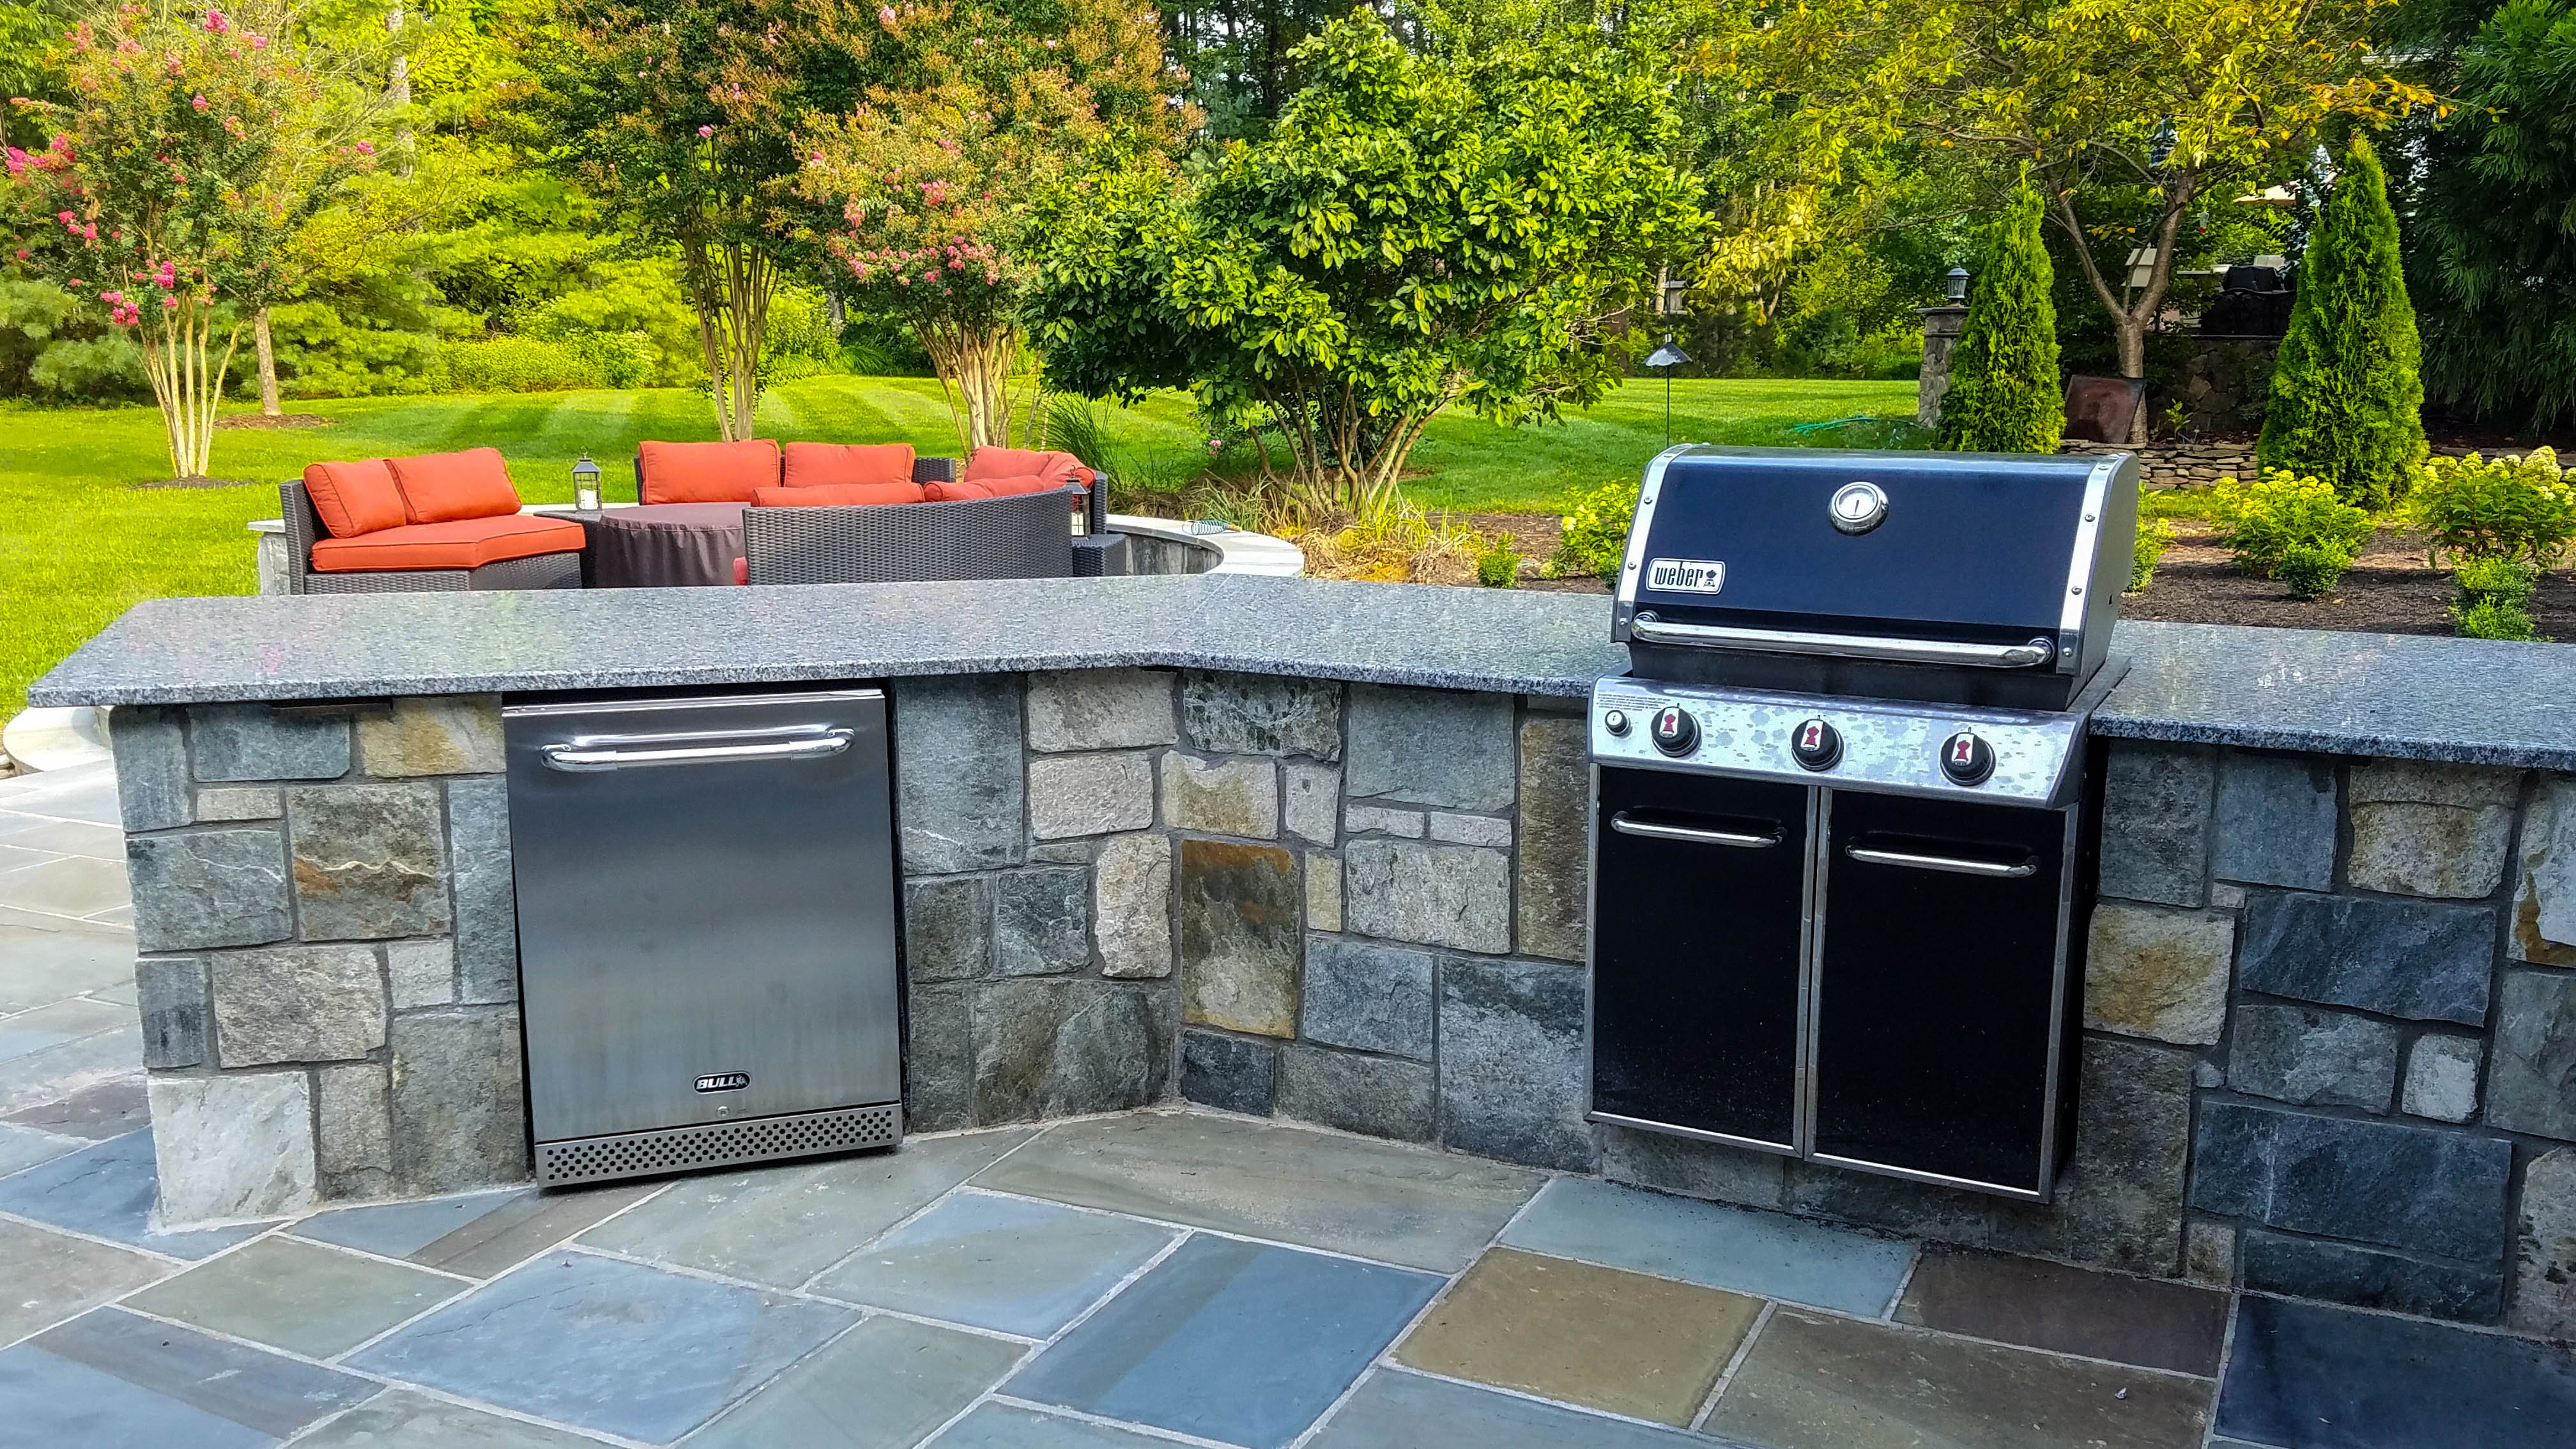 5 Crucial Questions Before Designing and Building Outdoor Kitchens in Ashburn, Aldie, and Leesburg, VA